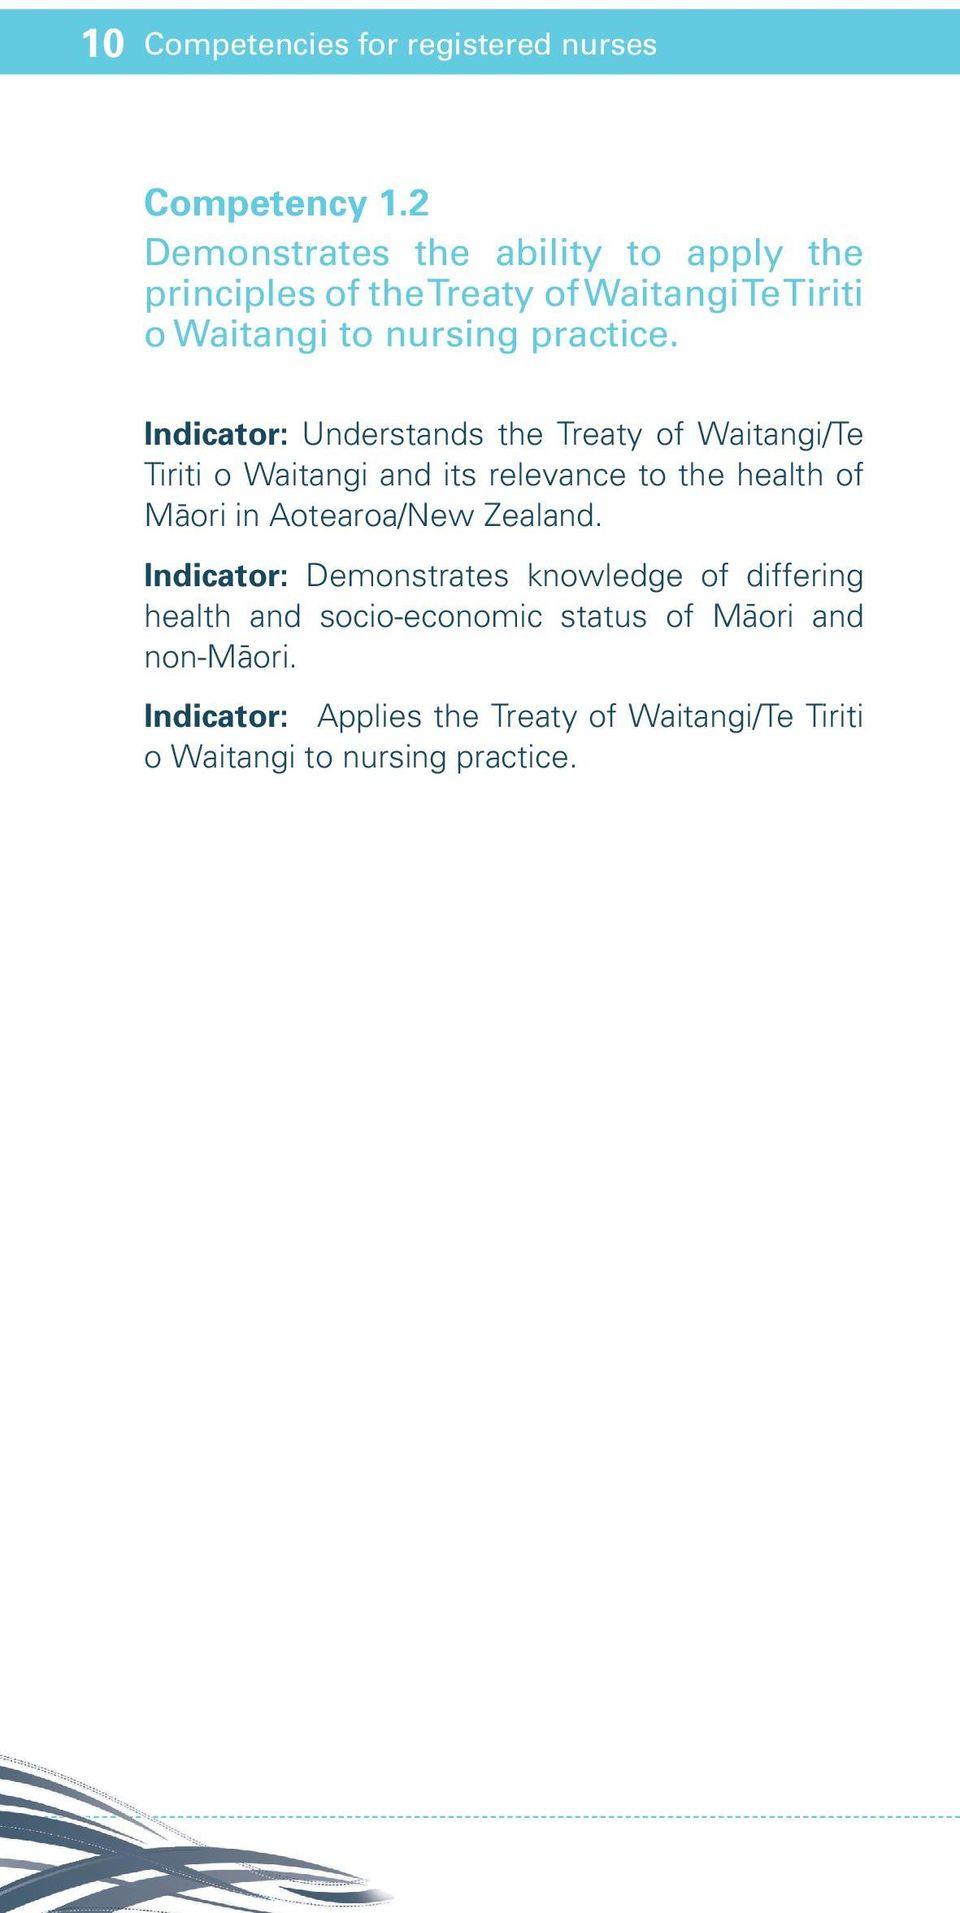 Indicator: Understands the Treaty of Waitangi/Te Tiriti o Waitangi and its relevance to the health of Maori in